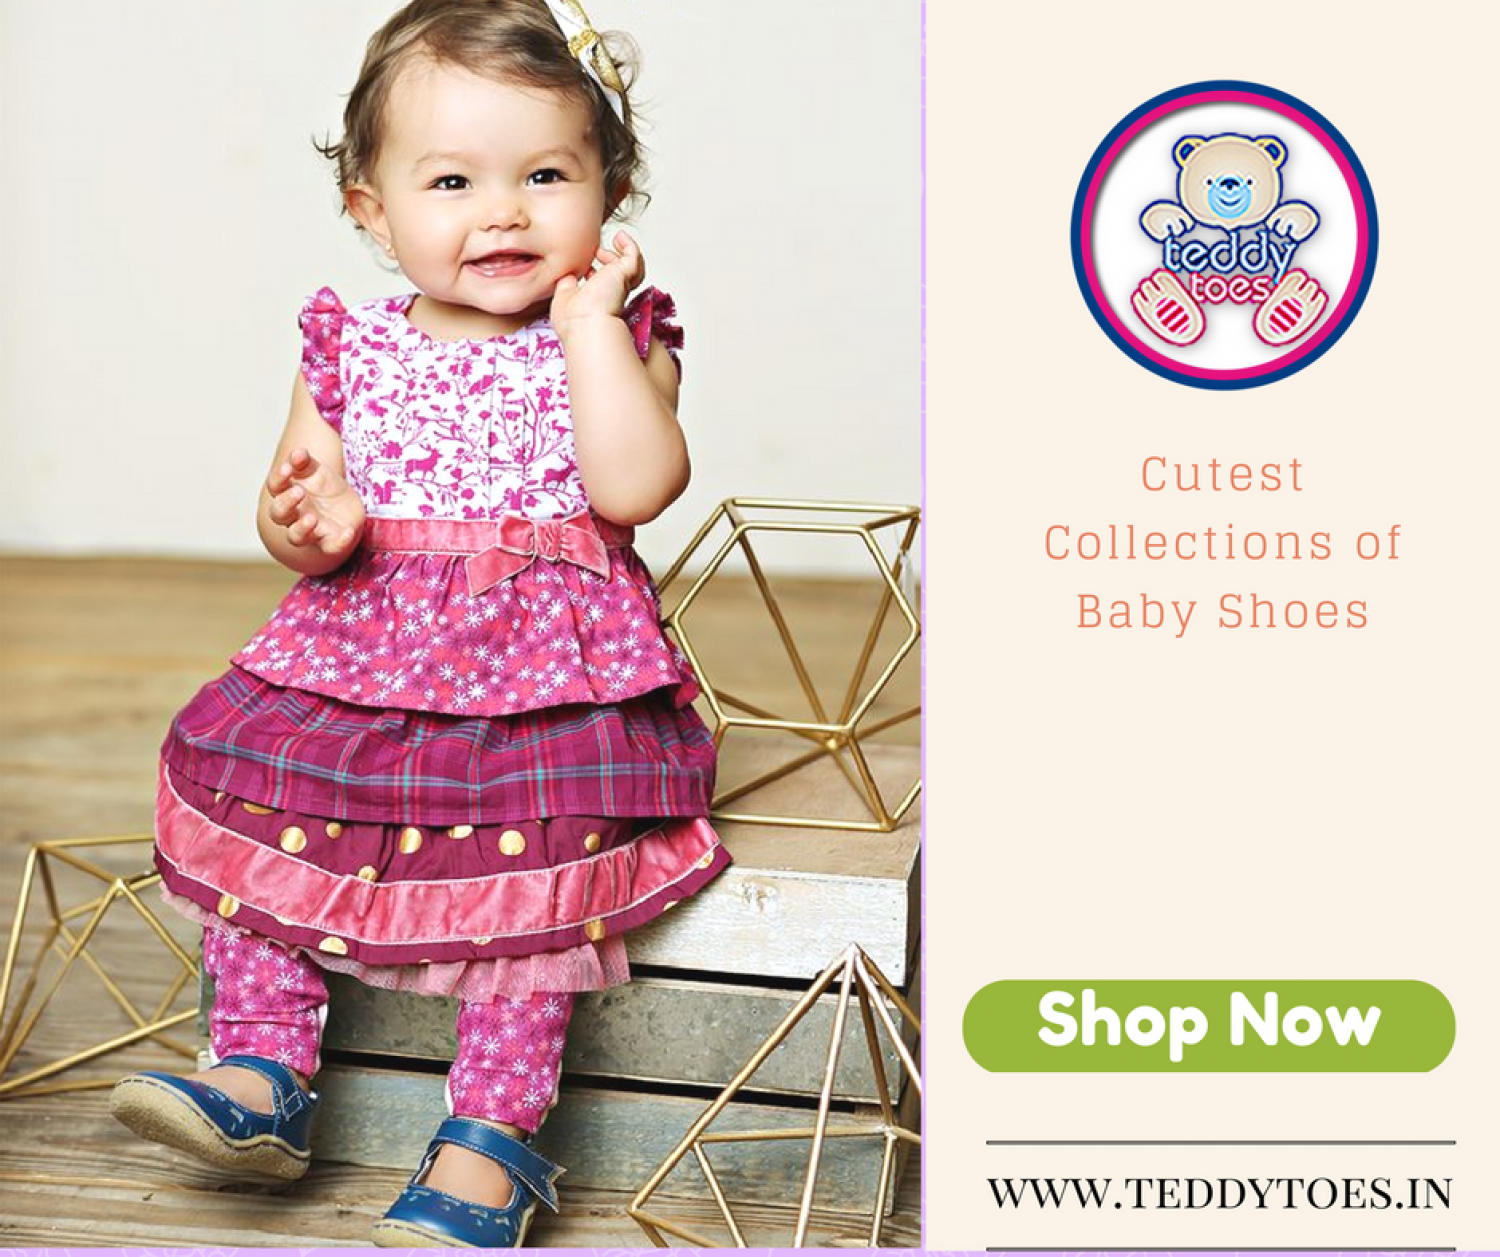 Teddy Toes Baby Shoes For Infants, Toddlers, Boys & girls 0-5 years. Infographic